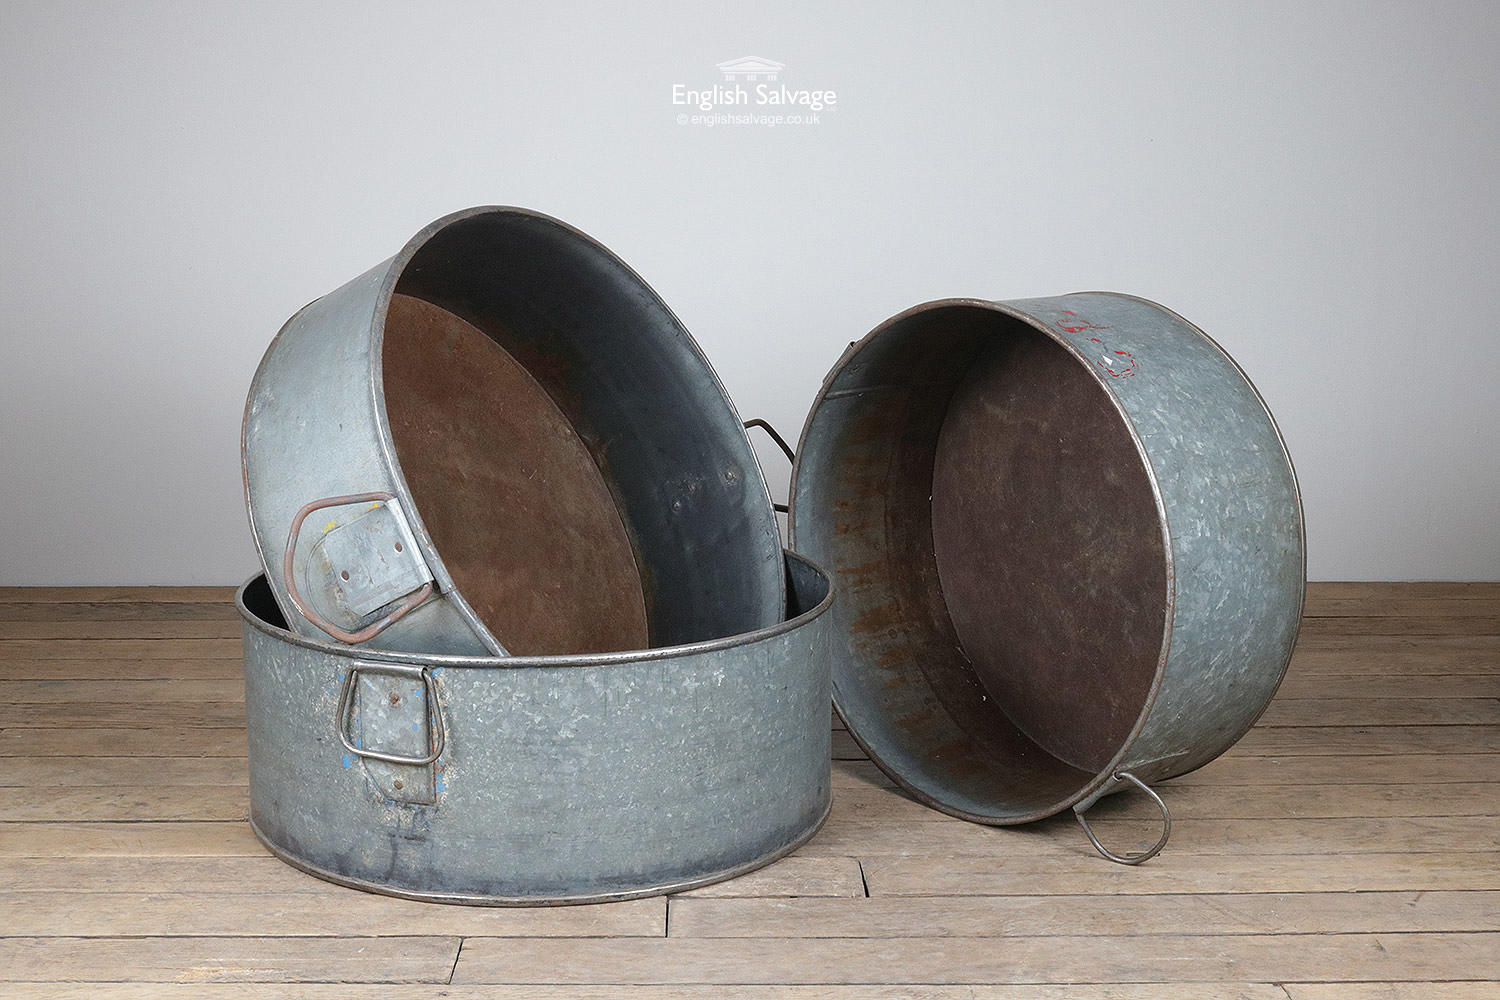 Large Round Metal Tubs With Handles